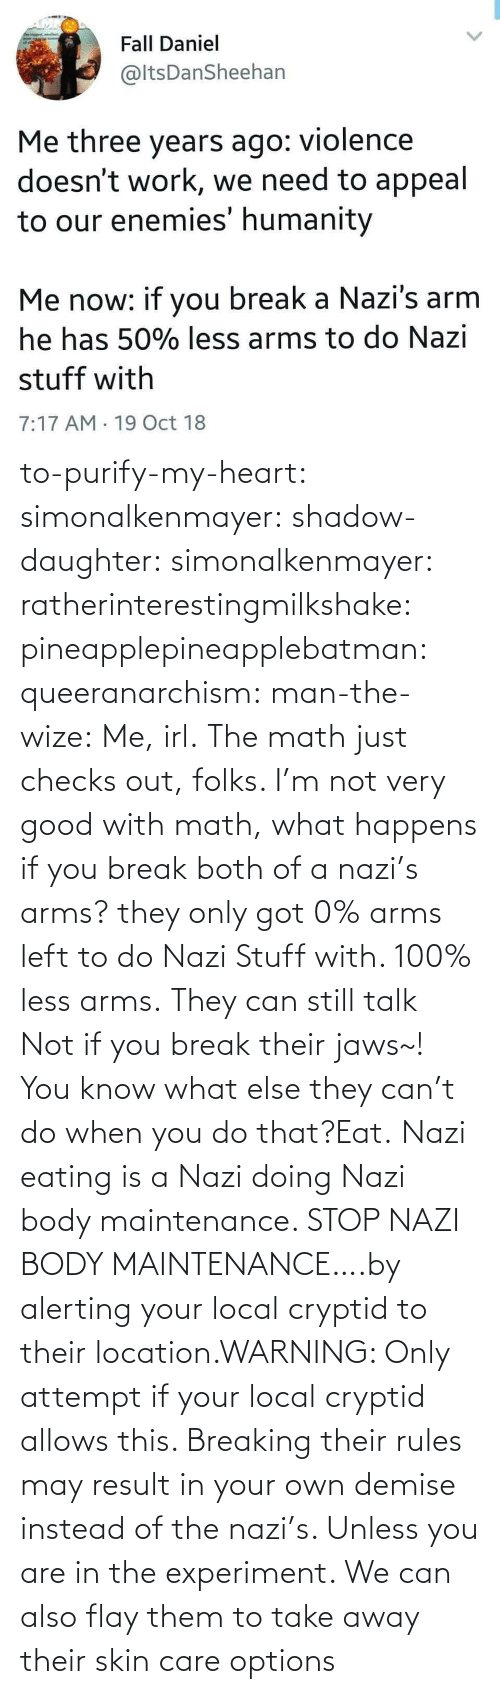 Both: to-purify-my-heart:  simonalkenmayer:  shadow-daughter: simonalkenmayer:  ratherinterestingmilkshake:  pineapplepineapplebatman:  queeranarchism:  man-the-wize: Me, irl. The math just checks out, folks.     I'm not very good with math, what happens if you break both of a nazi's arms?  they only got 0% arms left to do Nazi Stuff with. 100% less arms.  They can still talk  Not if you break their jaws~!  You know what else they can't do when you do that?Eat.   Nazi eating is a Nazi doing Nazi body maintenance. STOP NAZI BODY MAINTENANCE….by alerting your local cryptid to their location.WARNING: Only attempt if your local cryptid allows this. Breaking their rules may result in your own demise instead of the nazi's. Unless you are in the experiment.    We can also flay them to take away their skin care options